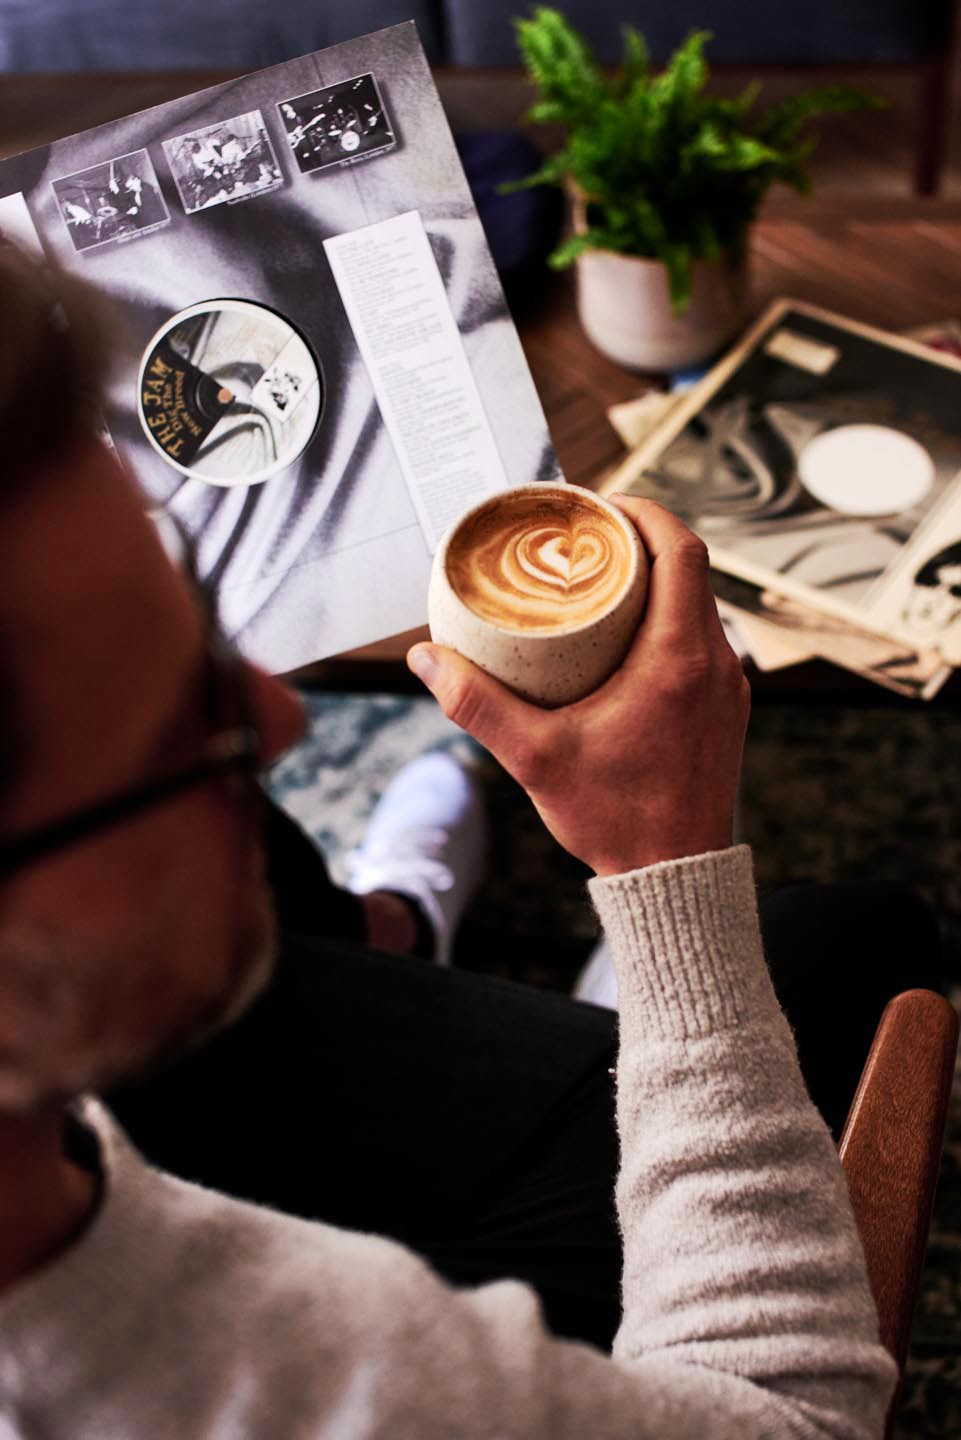 Relish Integrated Del Manning lifestyle photography brand photography man drinking coffee records